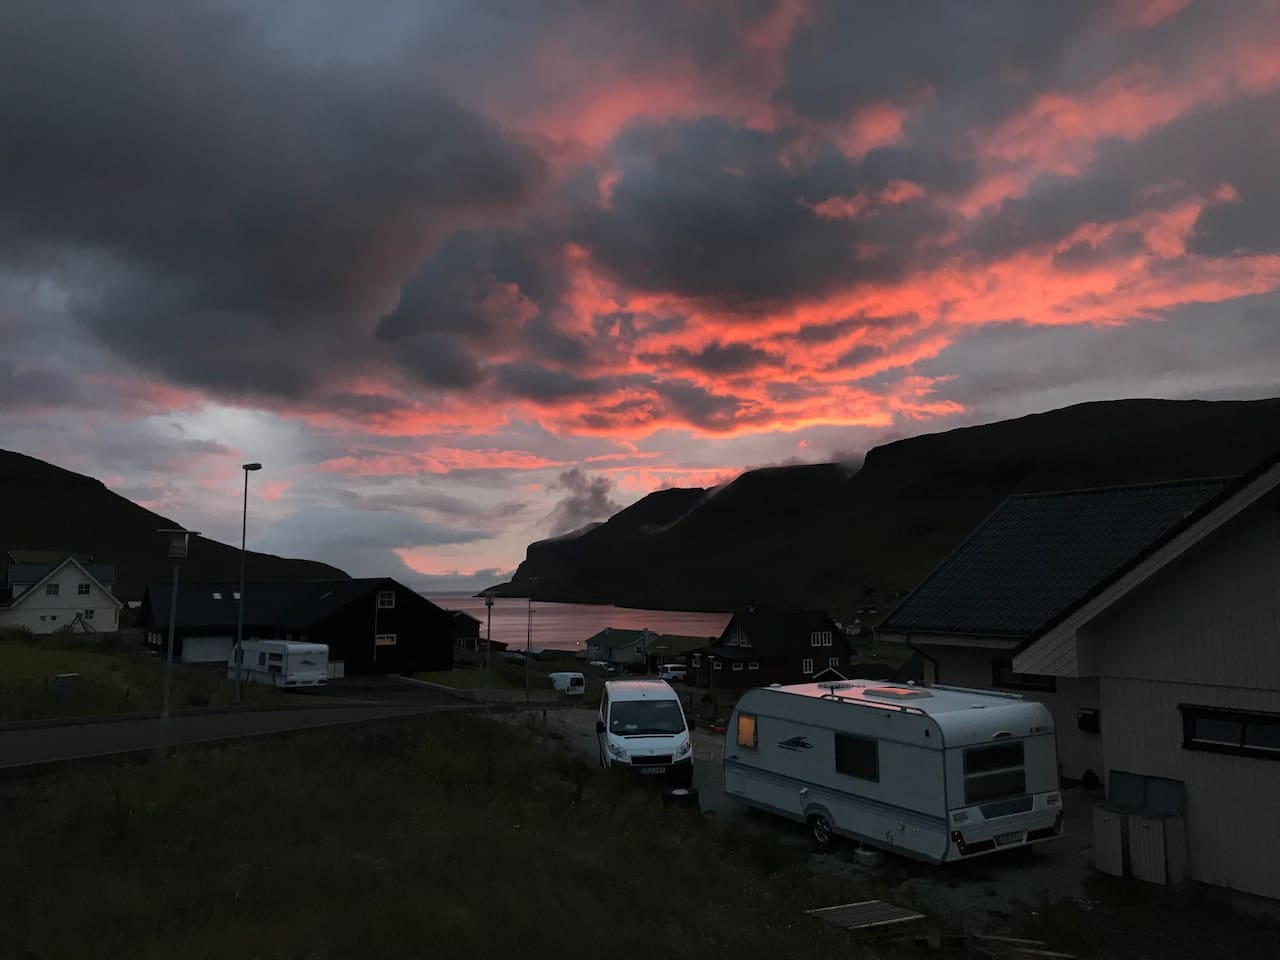 Our house and the camper. Mykines in the background, under the red skies.